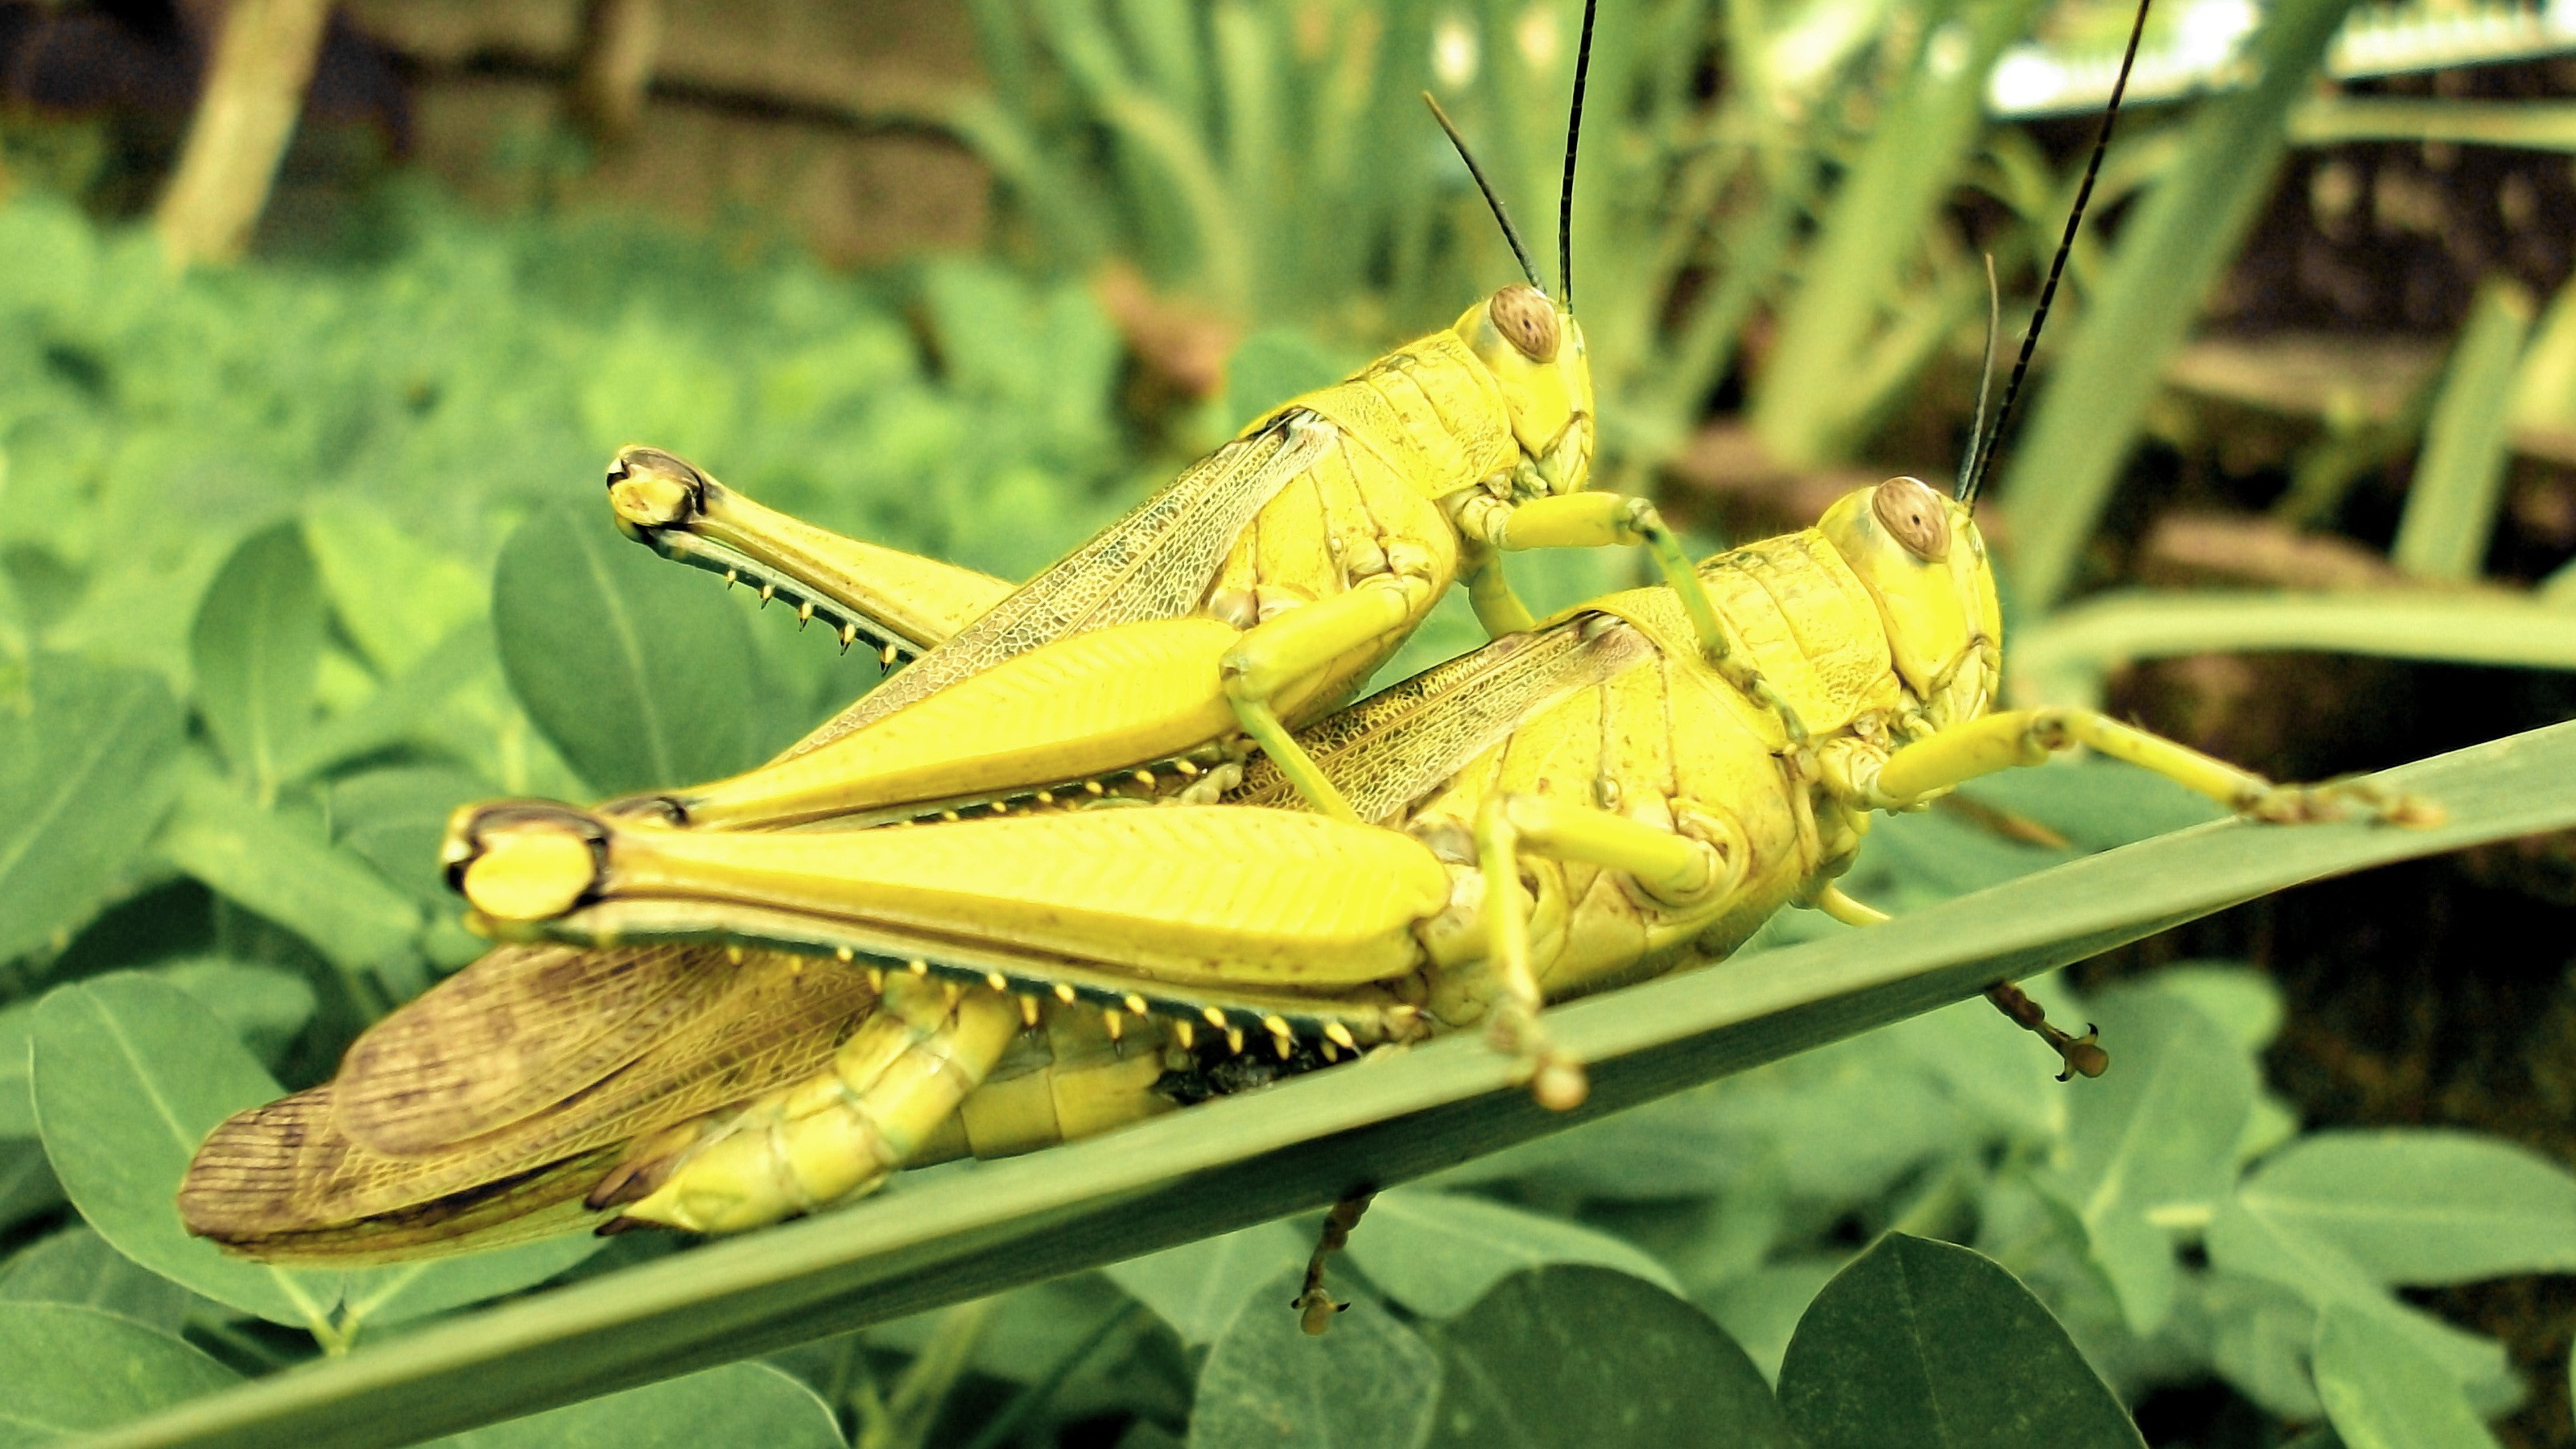 Green insects grasshopper wild HD Wallpaper